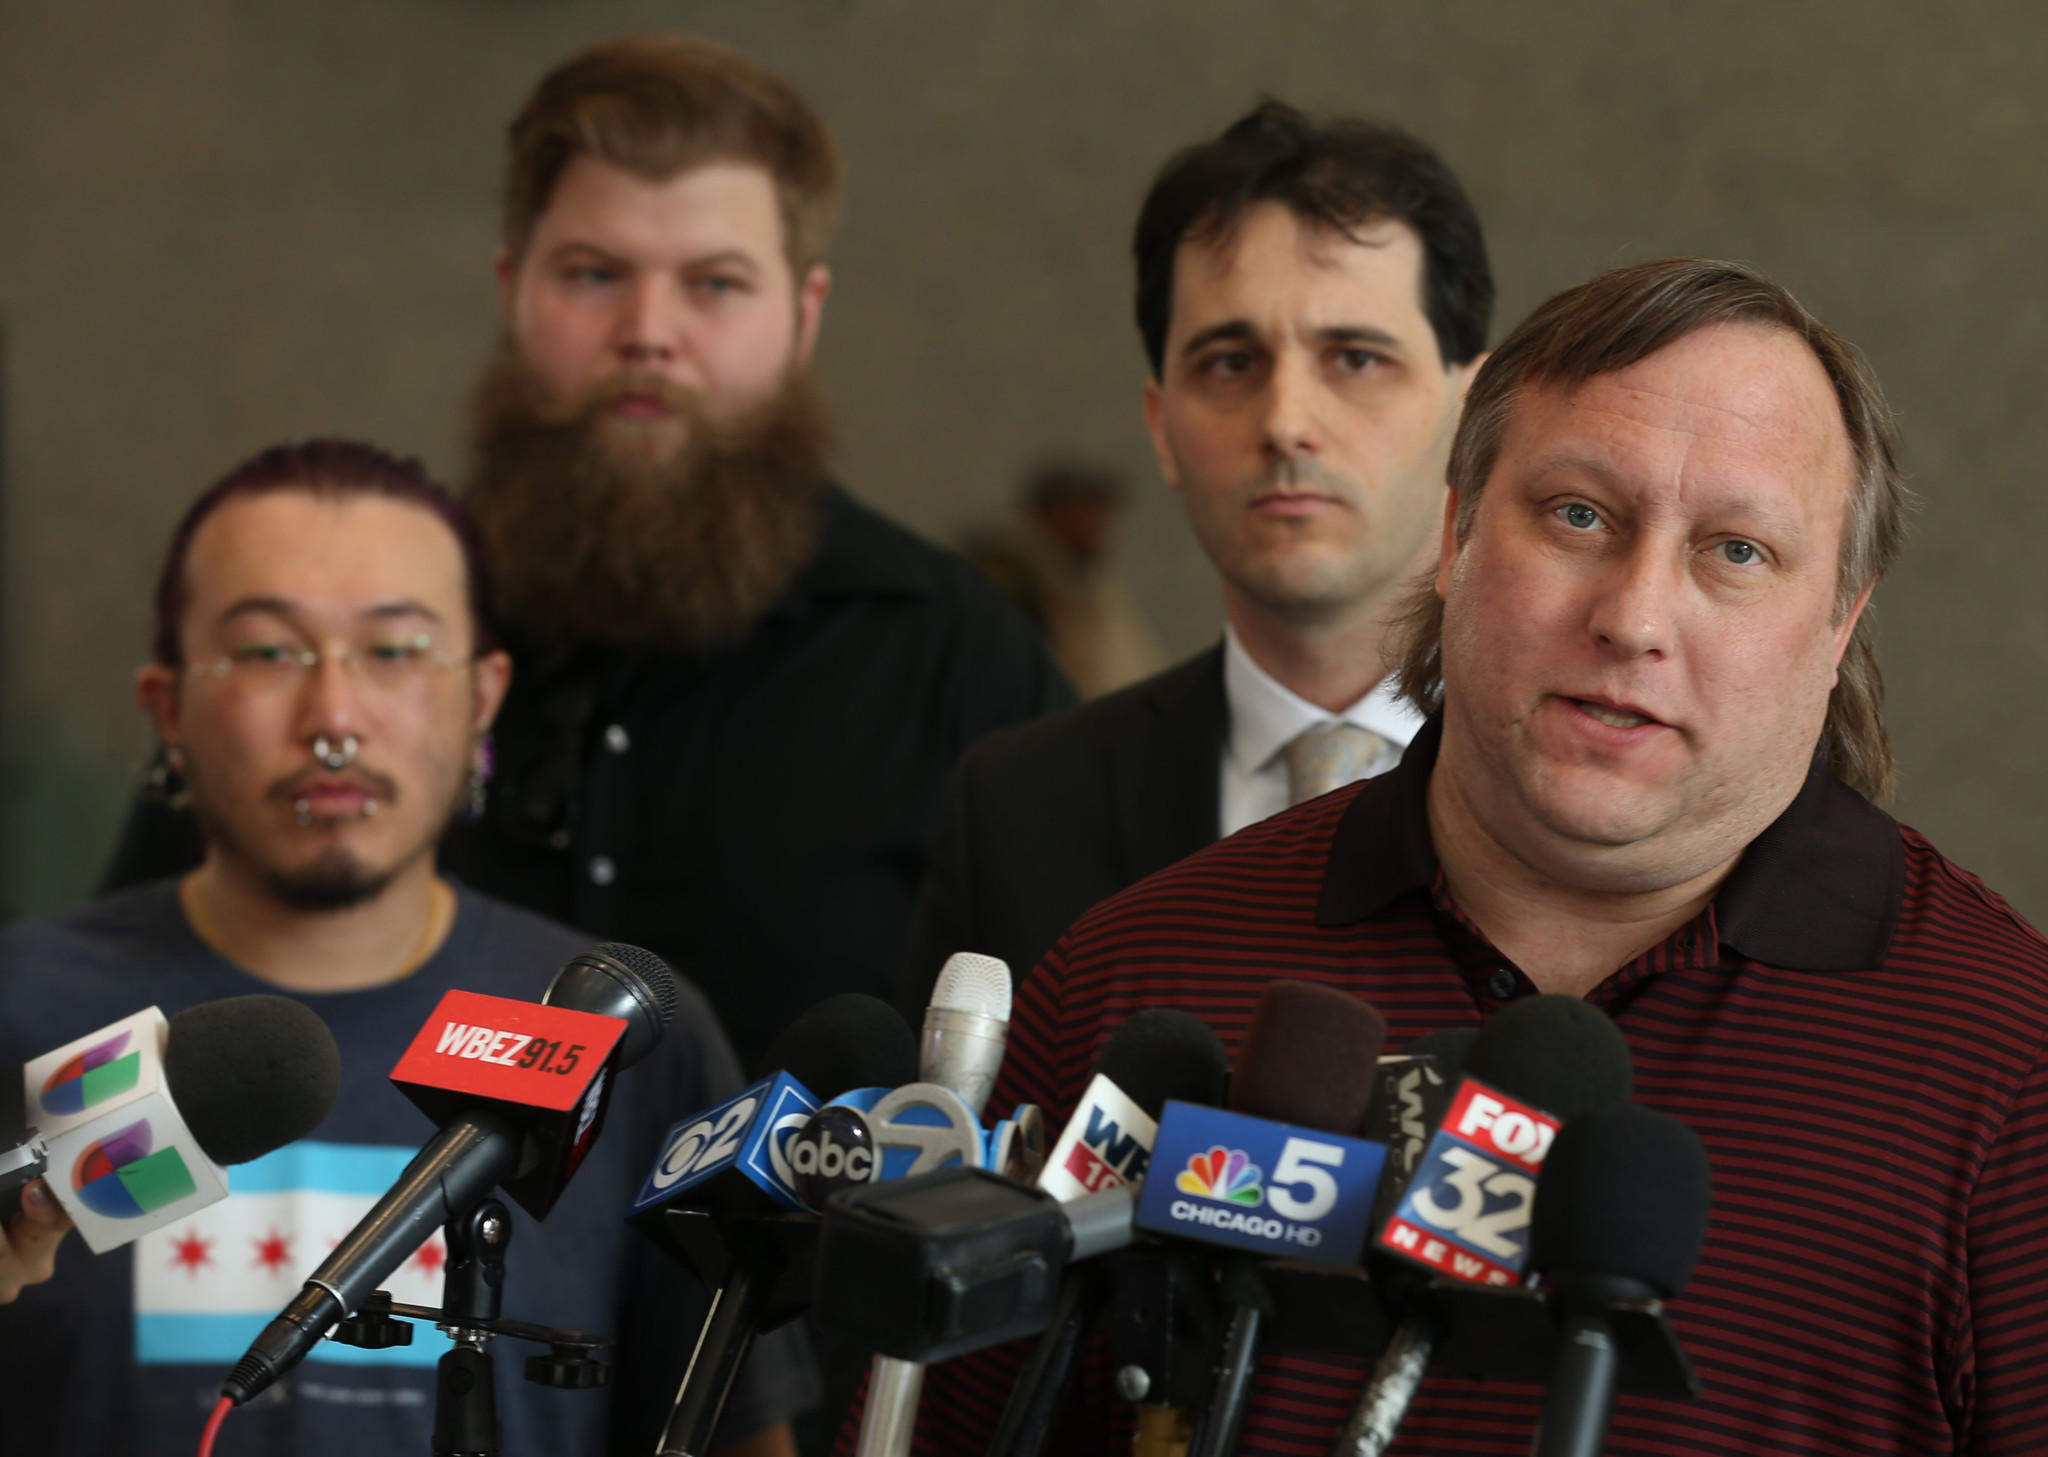 Rideshare drivers Ted Liu, left, Dustin Morby, second from left, attorney Anthony Sanders, second from right, listen to rideshare driver Dan Burgess, right talk about a motion to intervene in the lawsuit that ridershare drivers say threatens their services.